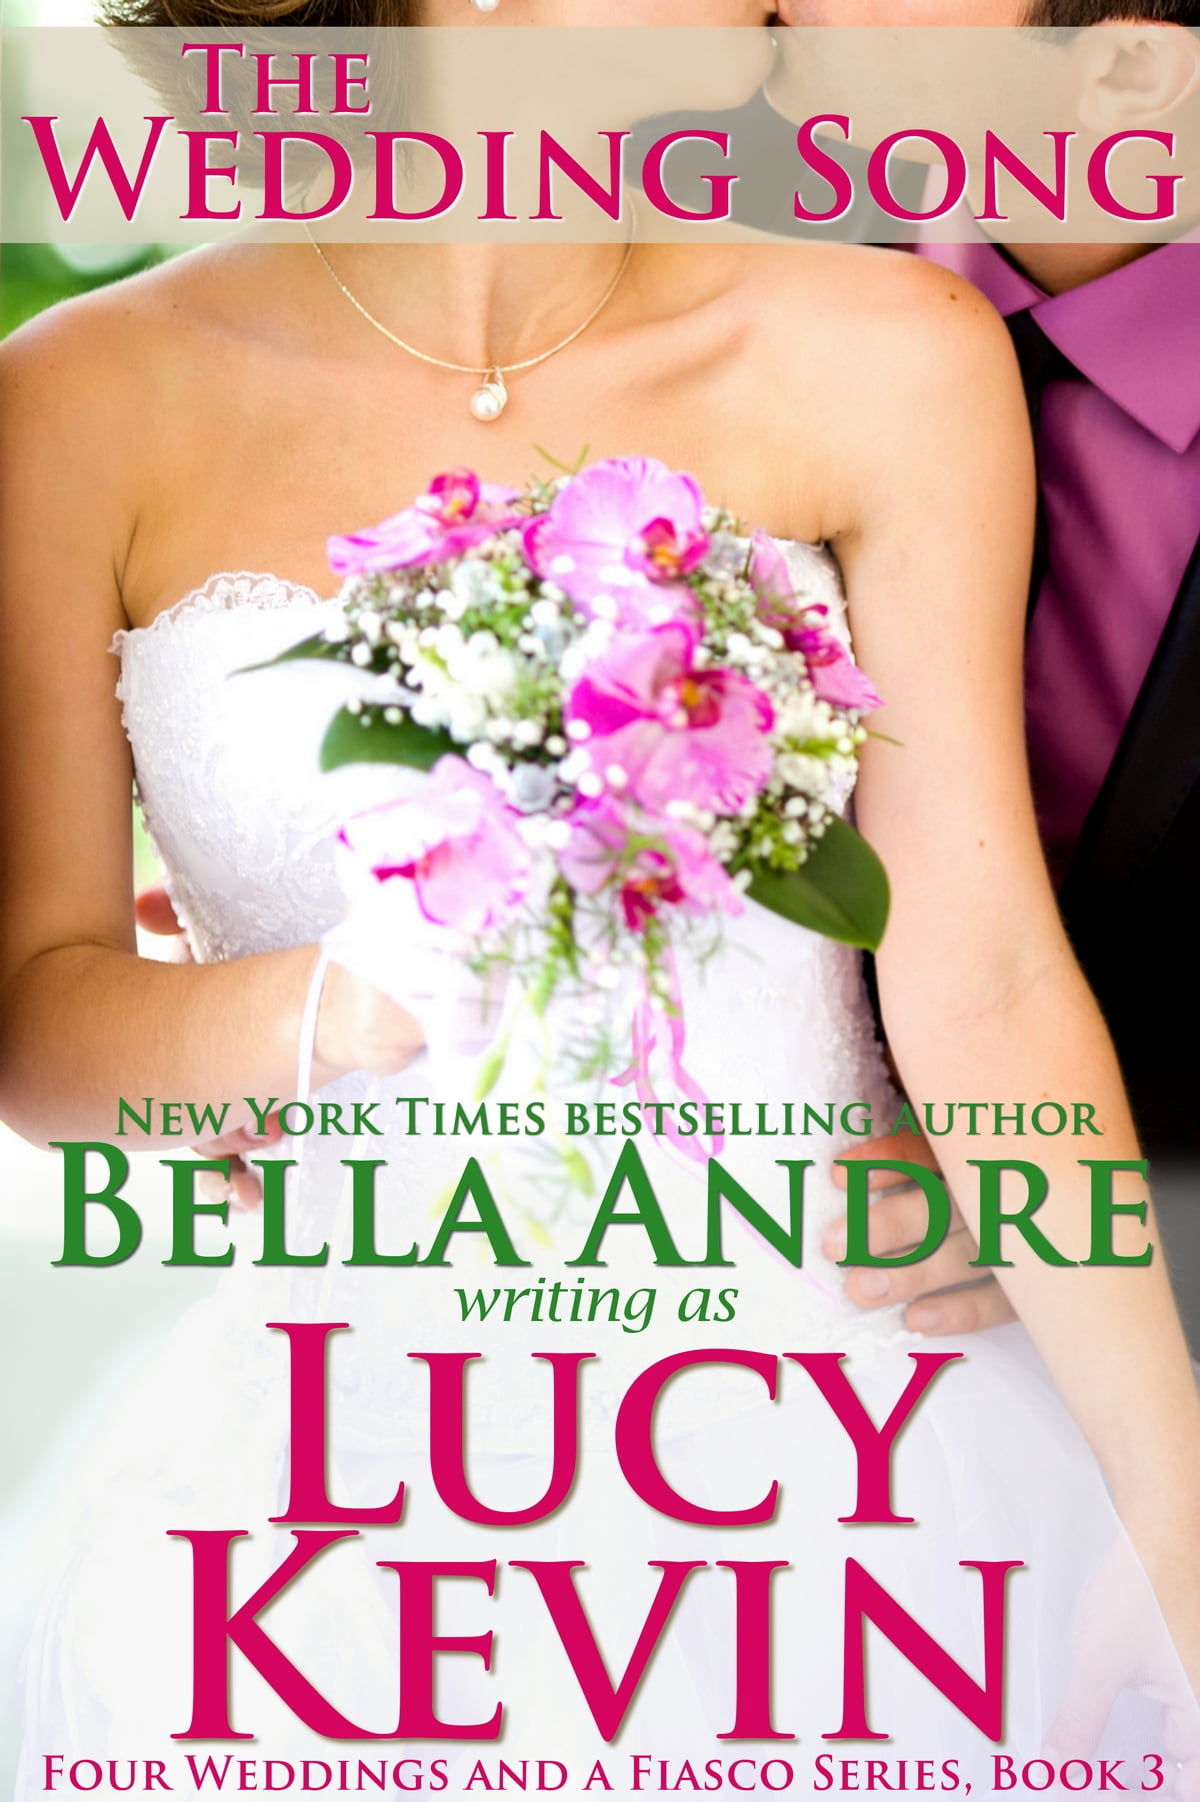 The wedding song four weddings and a fiasco book 3 ebook by the wedding song four weddings and a fiasco book 3 ebook by lucy kevin 9781938127243 rakuten kobo fandeluxe Document